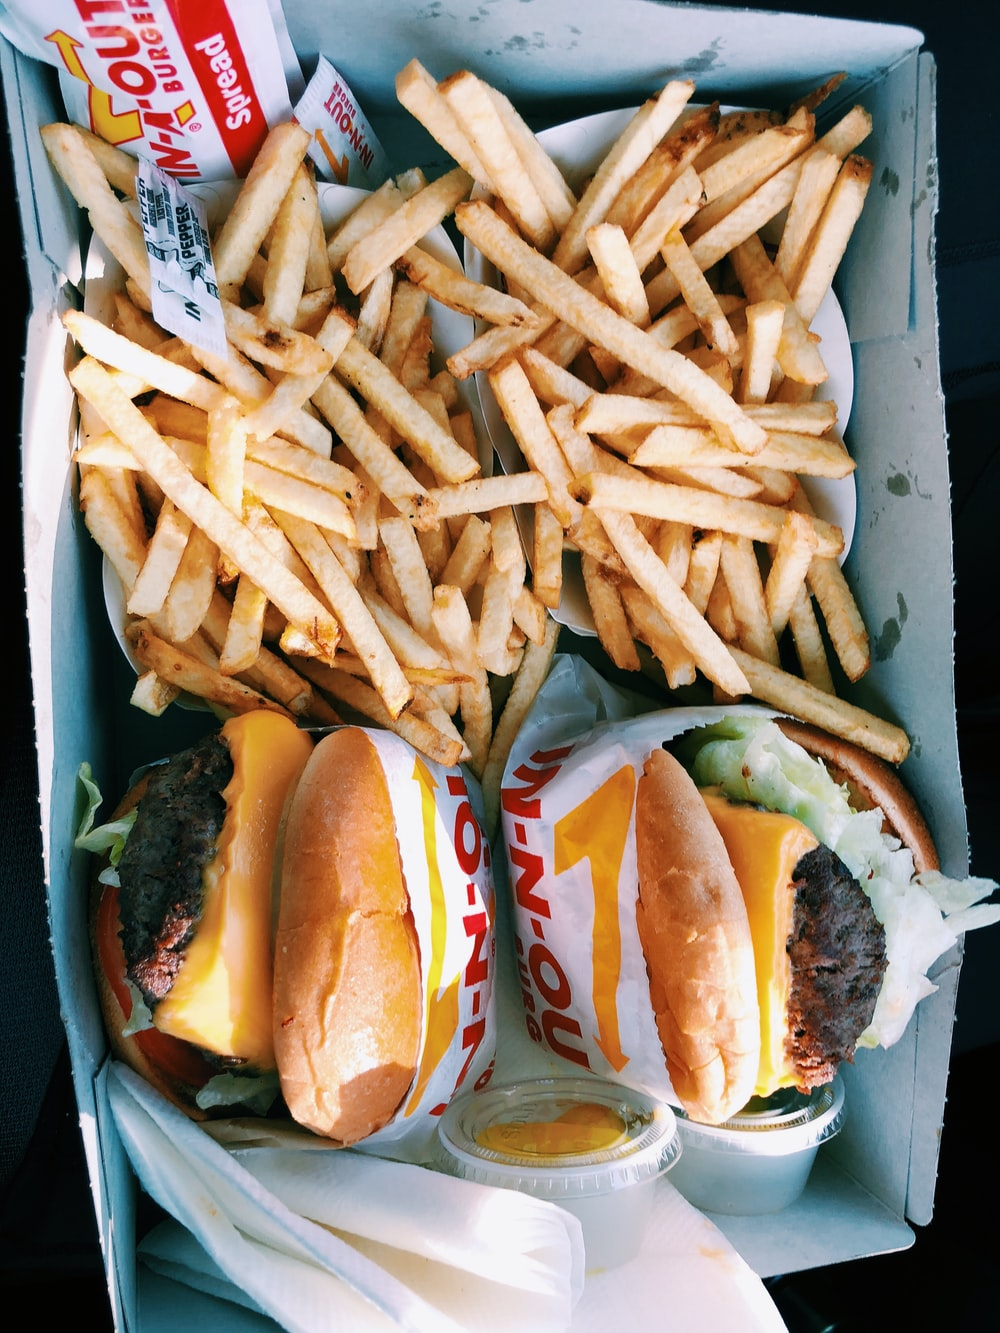 burgers and fries inside box |  Foreign Fast-Food Franchisee